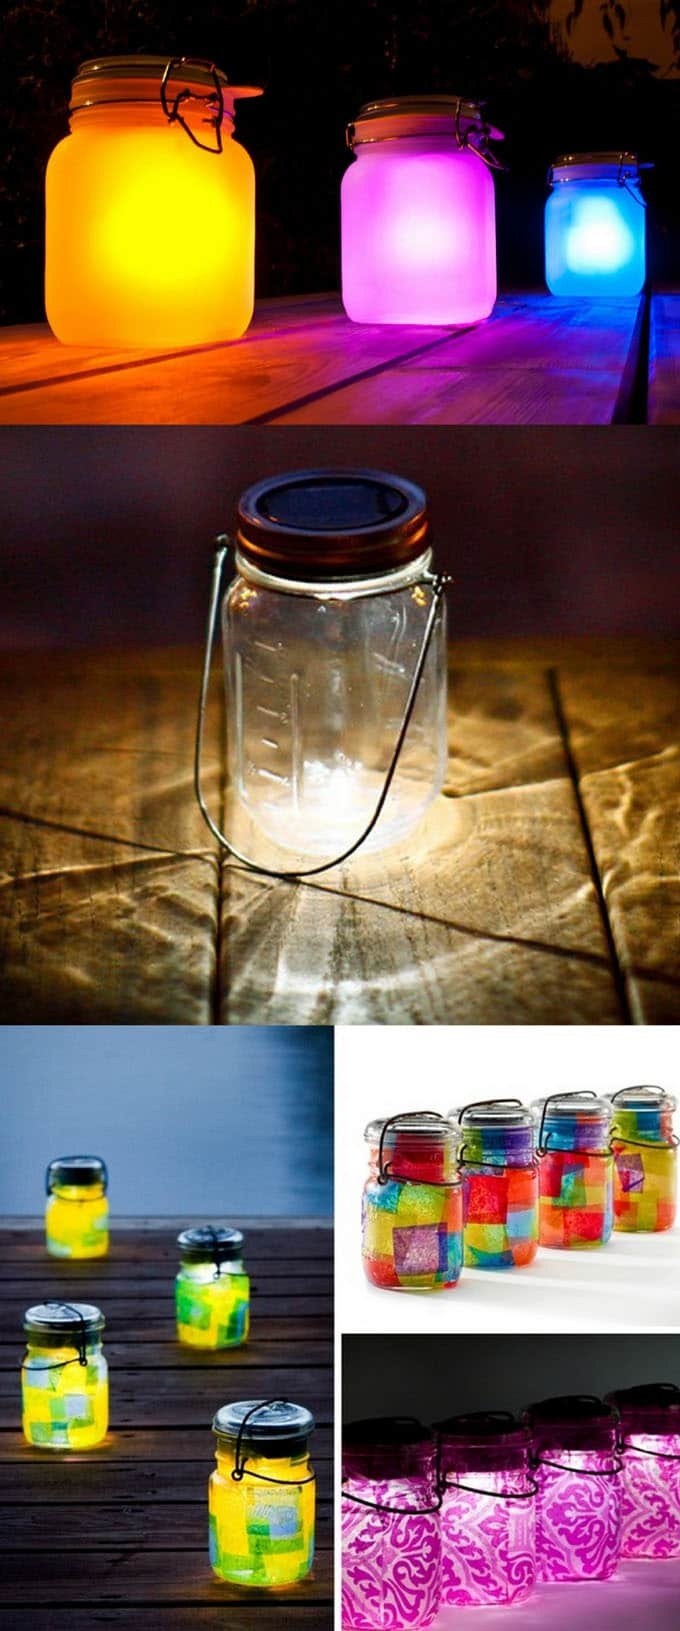 DIY-outdoor-lights-apieceofrainbowblog (5)